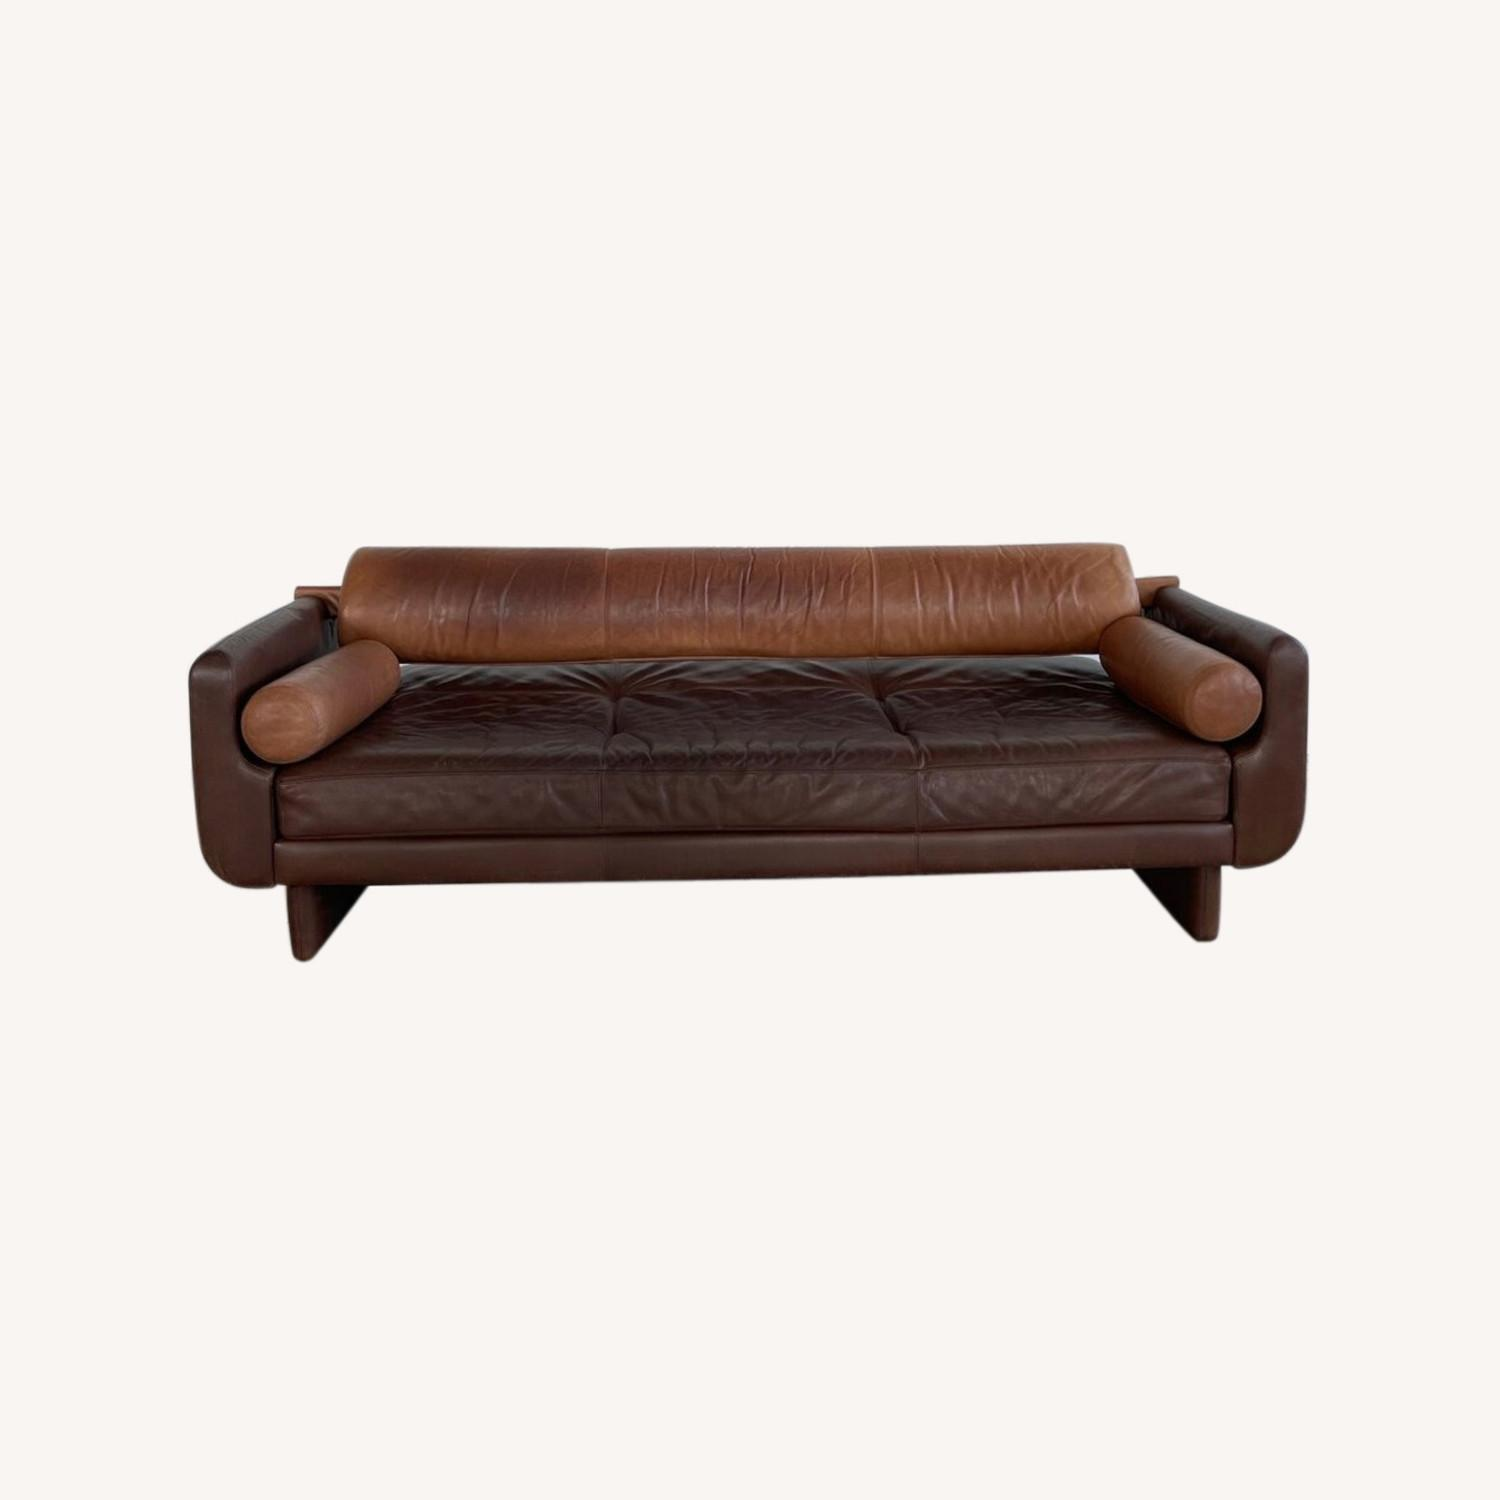 American Leather Daybed Sofa - image-0